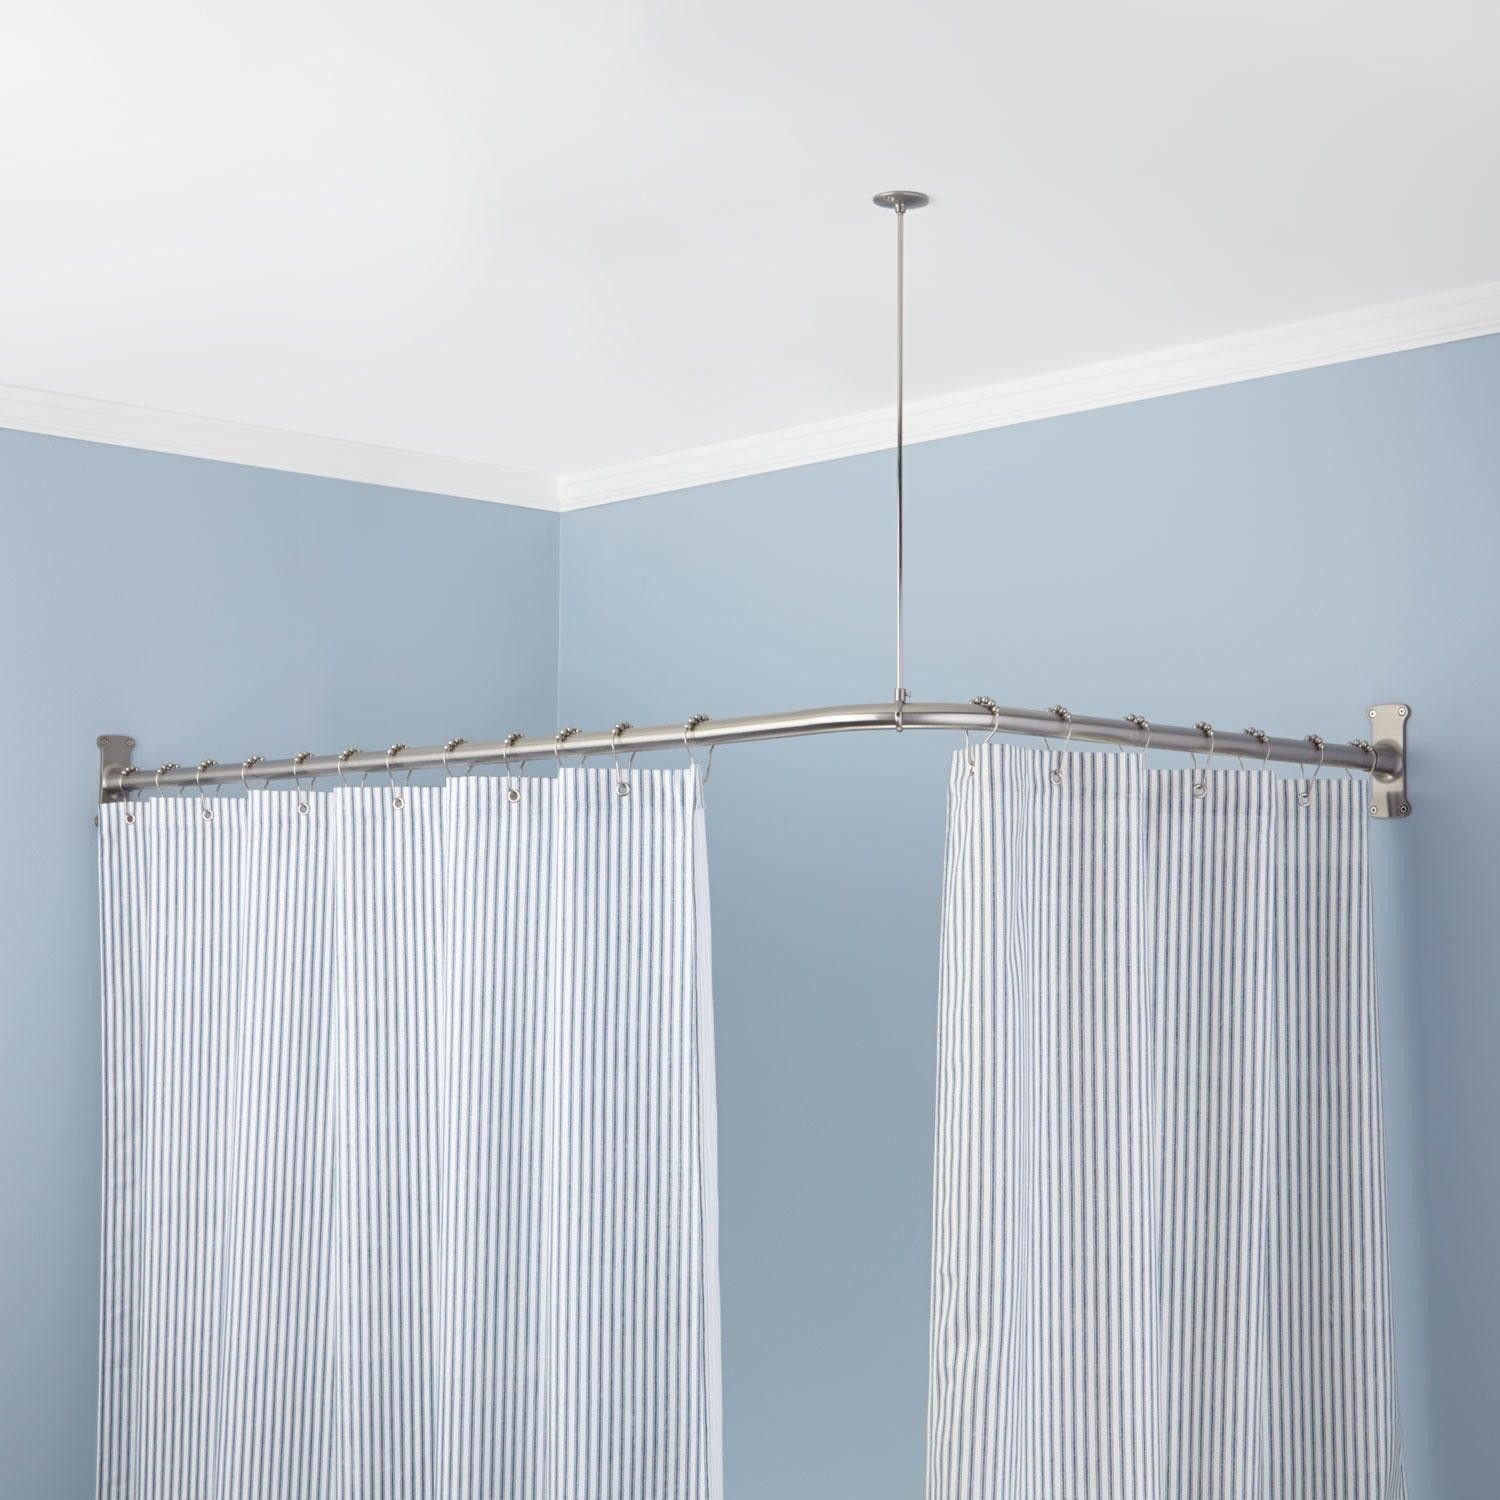 Curved Shower Curtain Rod For Corner Bath | http://legalize-crew ...